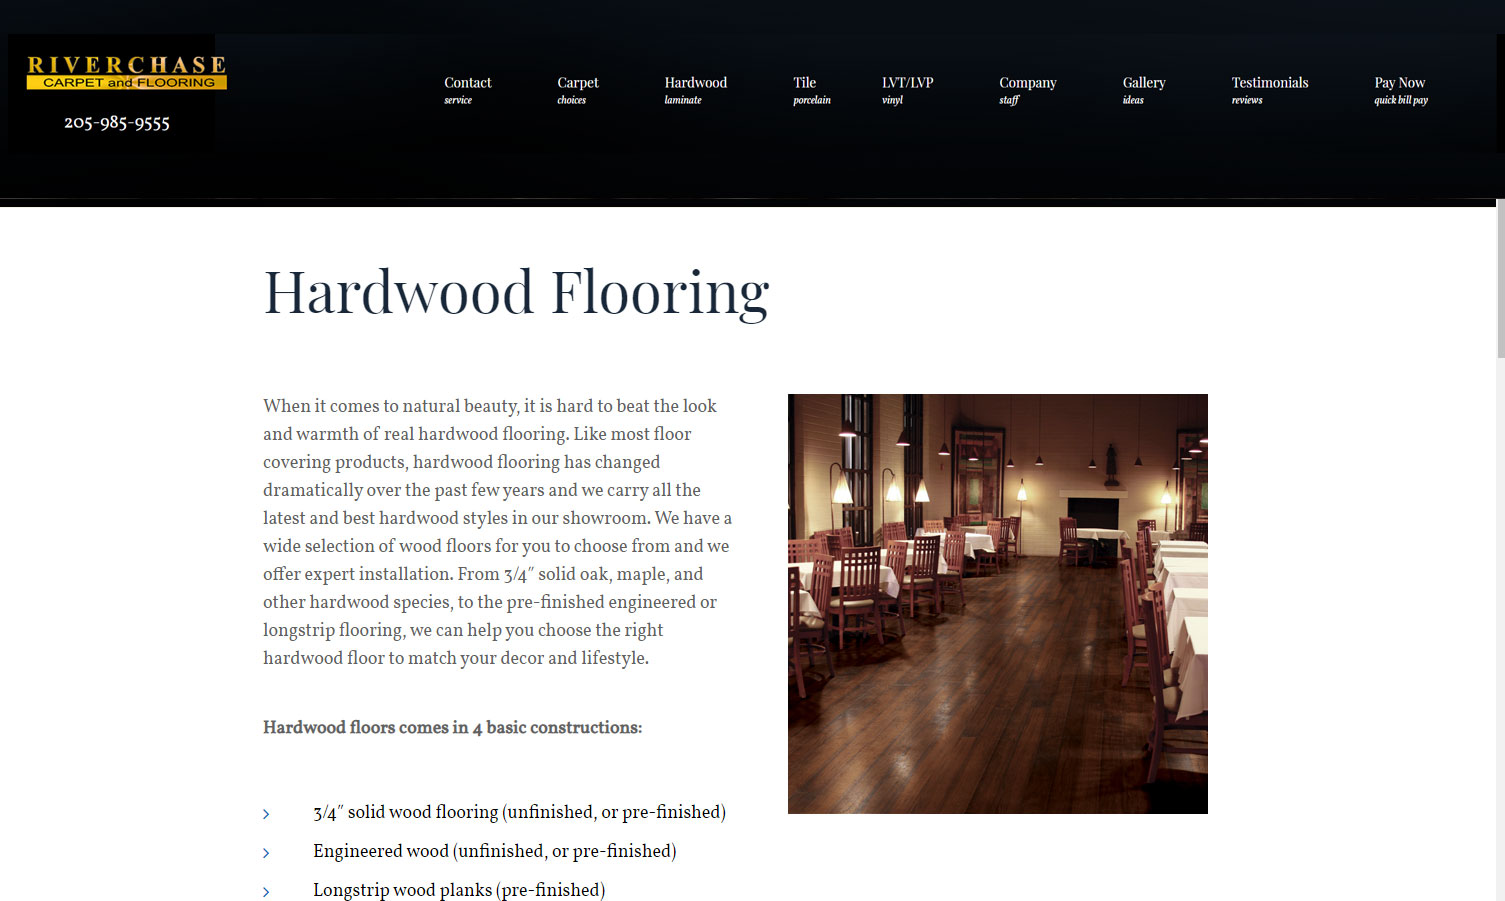 verchase Carpet & Flooring website